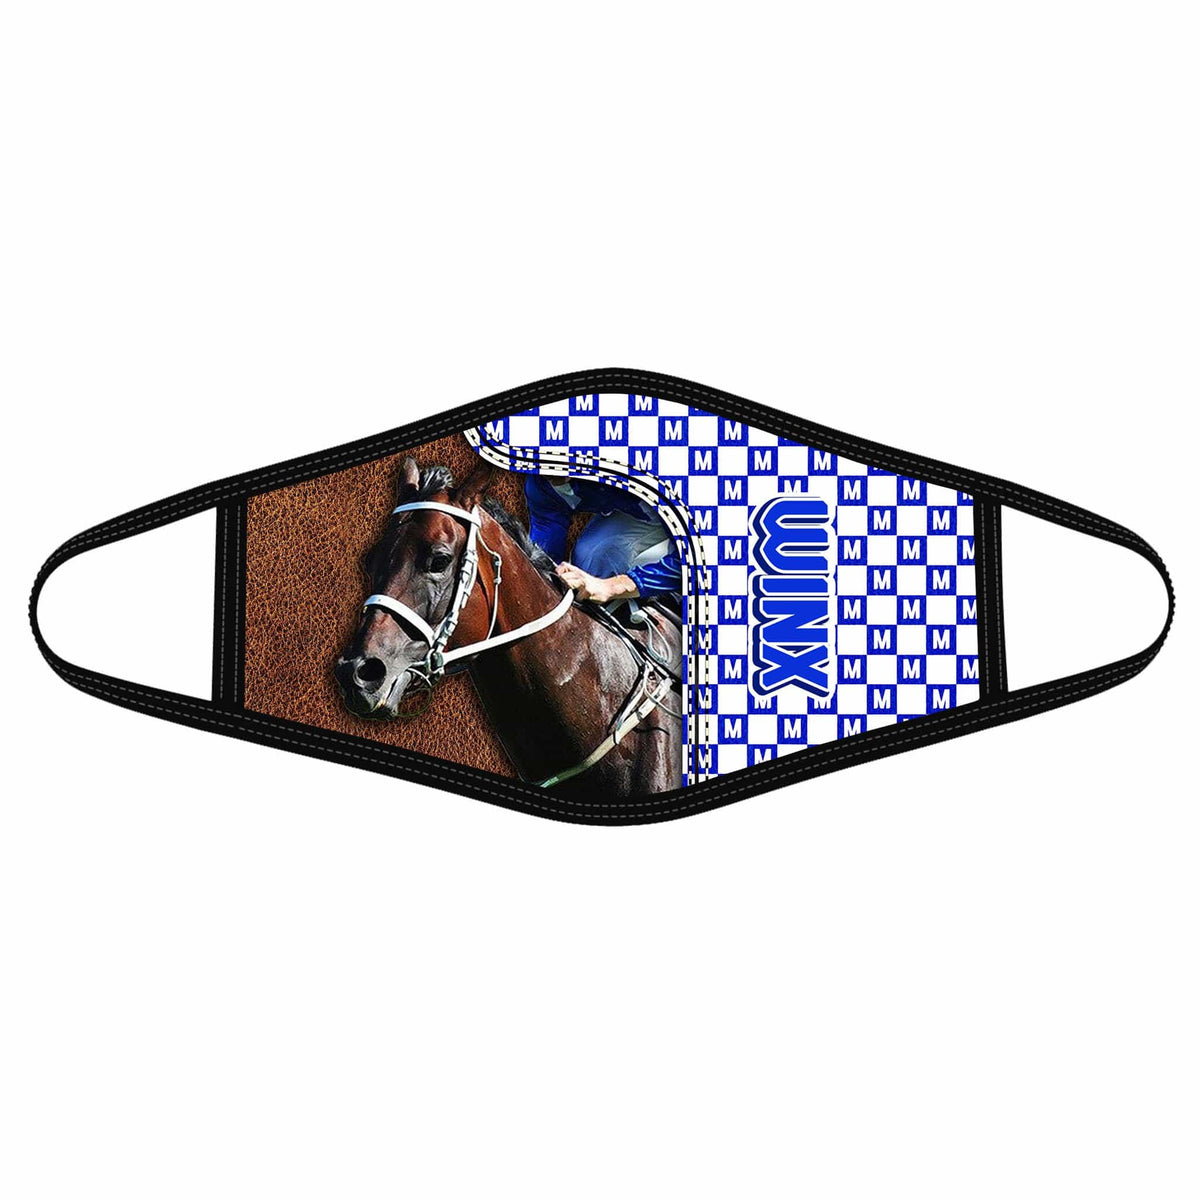 Pemola Winx Cloth Face Masks, Horse Racing Cloth Face Covers, Horse Face Coverings